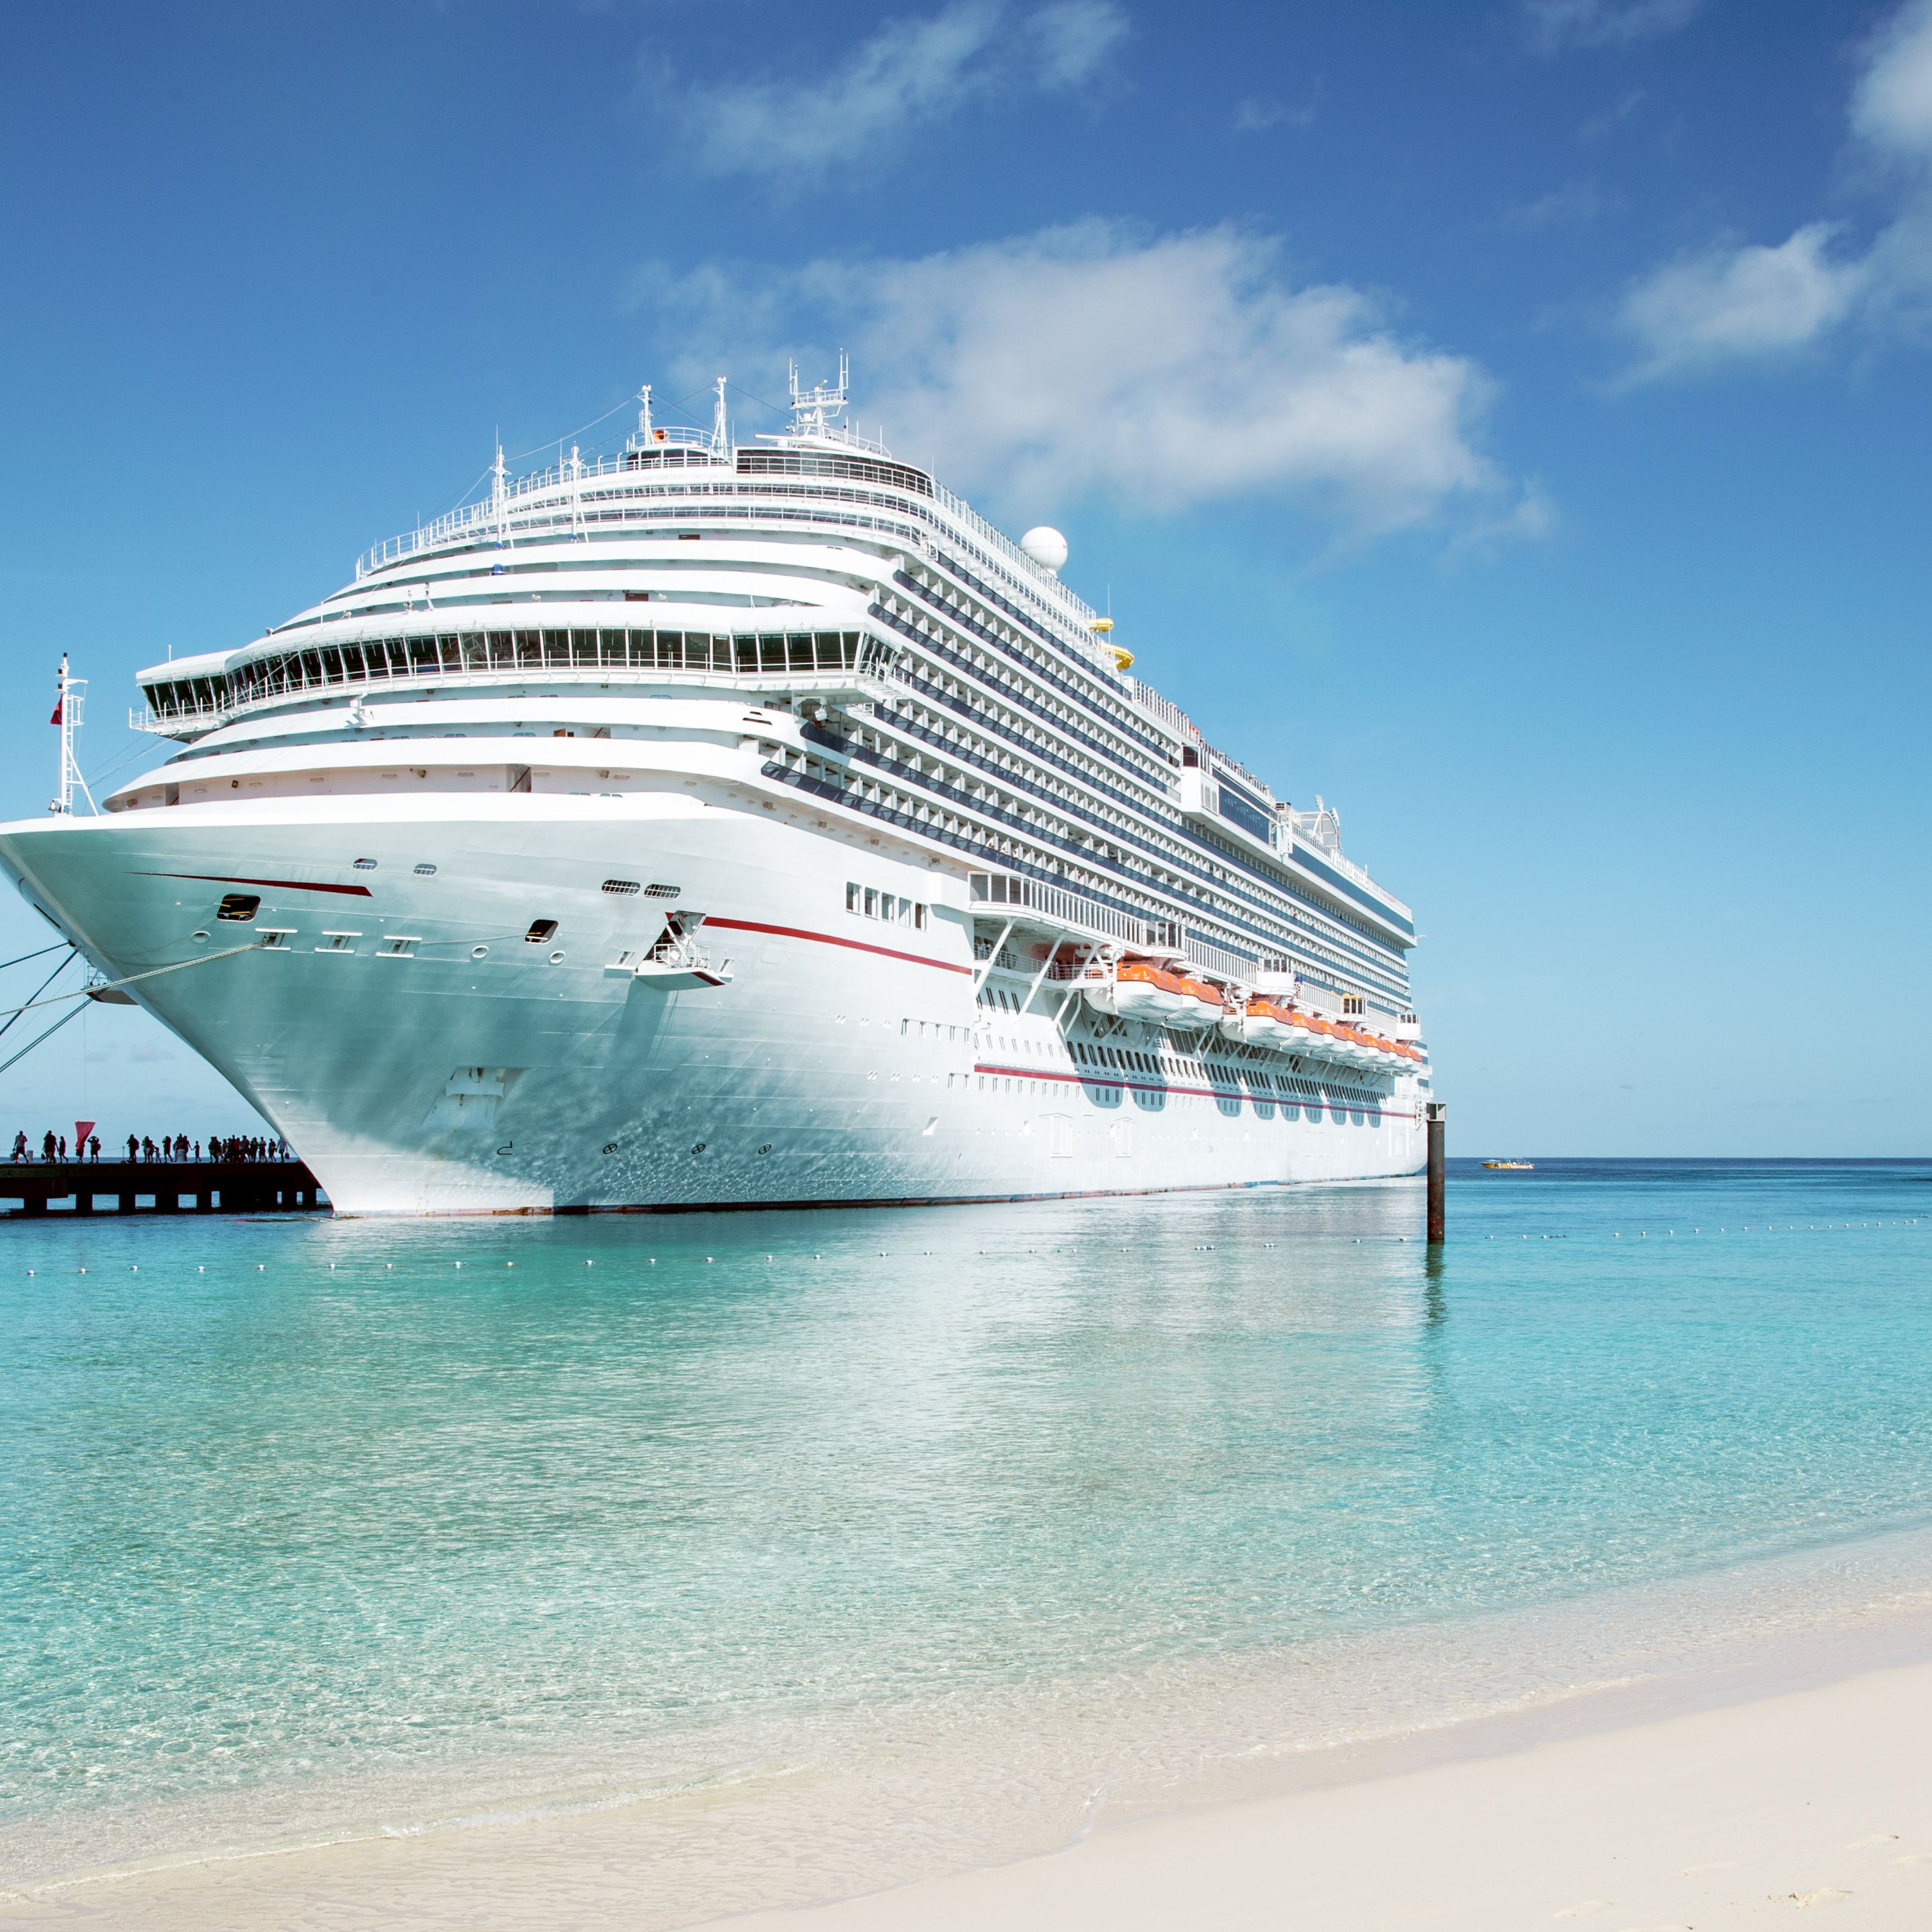 10 Tips Every First Time Cruiser Needs to Know